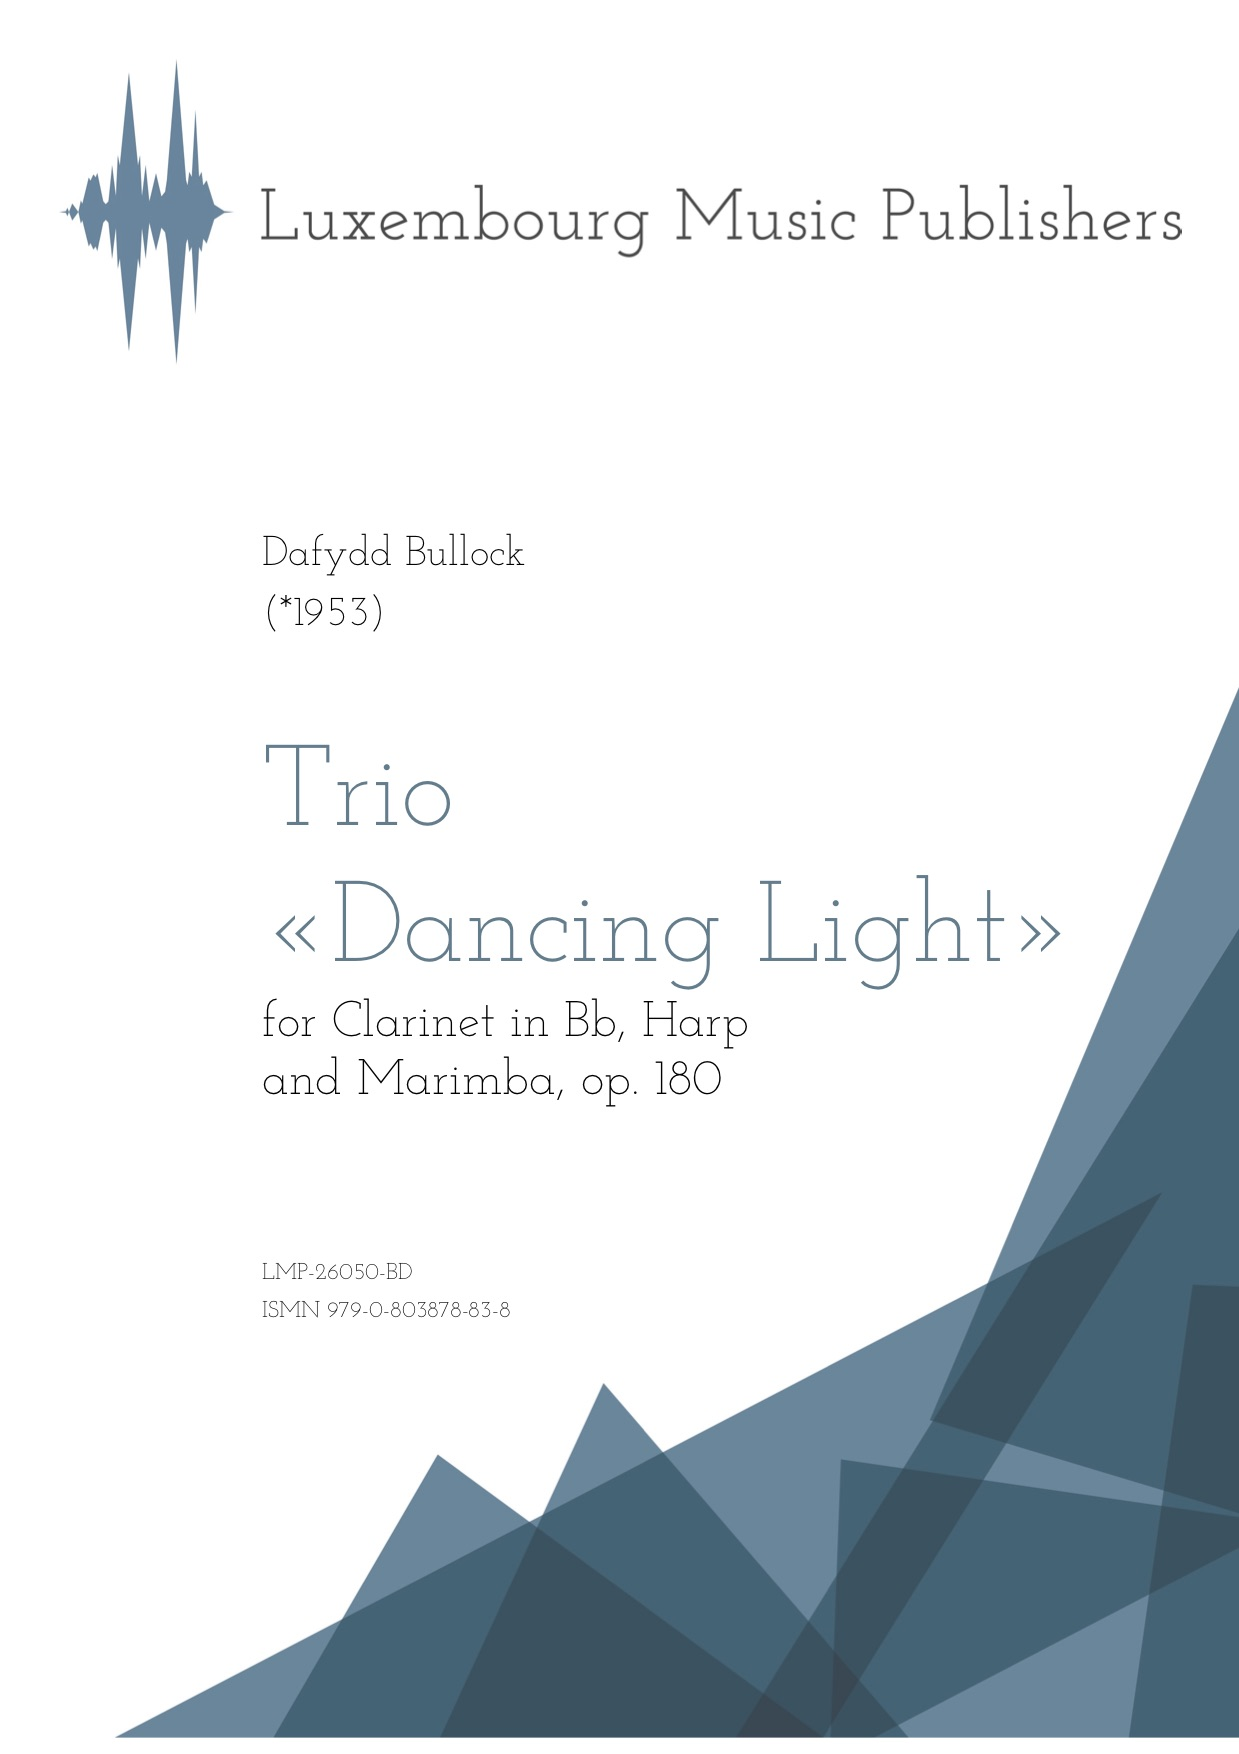 Trio Dancing Light. Sheet Music by Dafydd Bullock, composer. Music for clarinet in Bb, harp and marimba. Contemporary chamber music for three different instruments. Chamber music for wind instrument, harp and percussion.